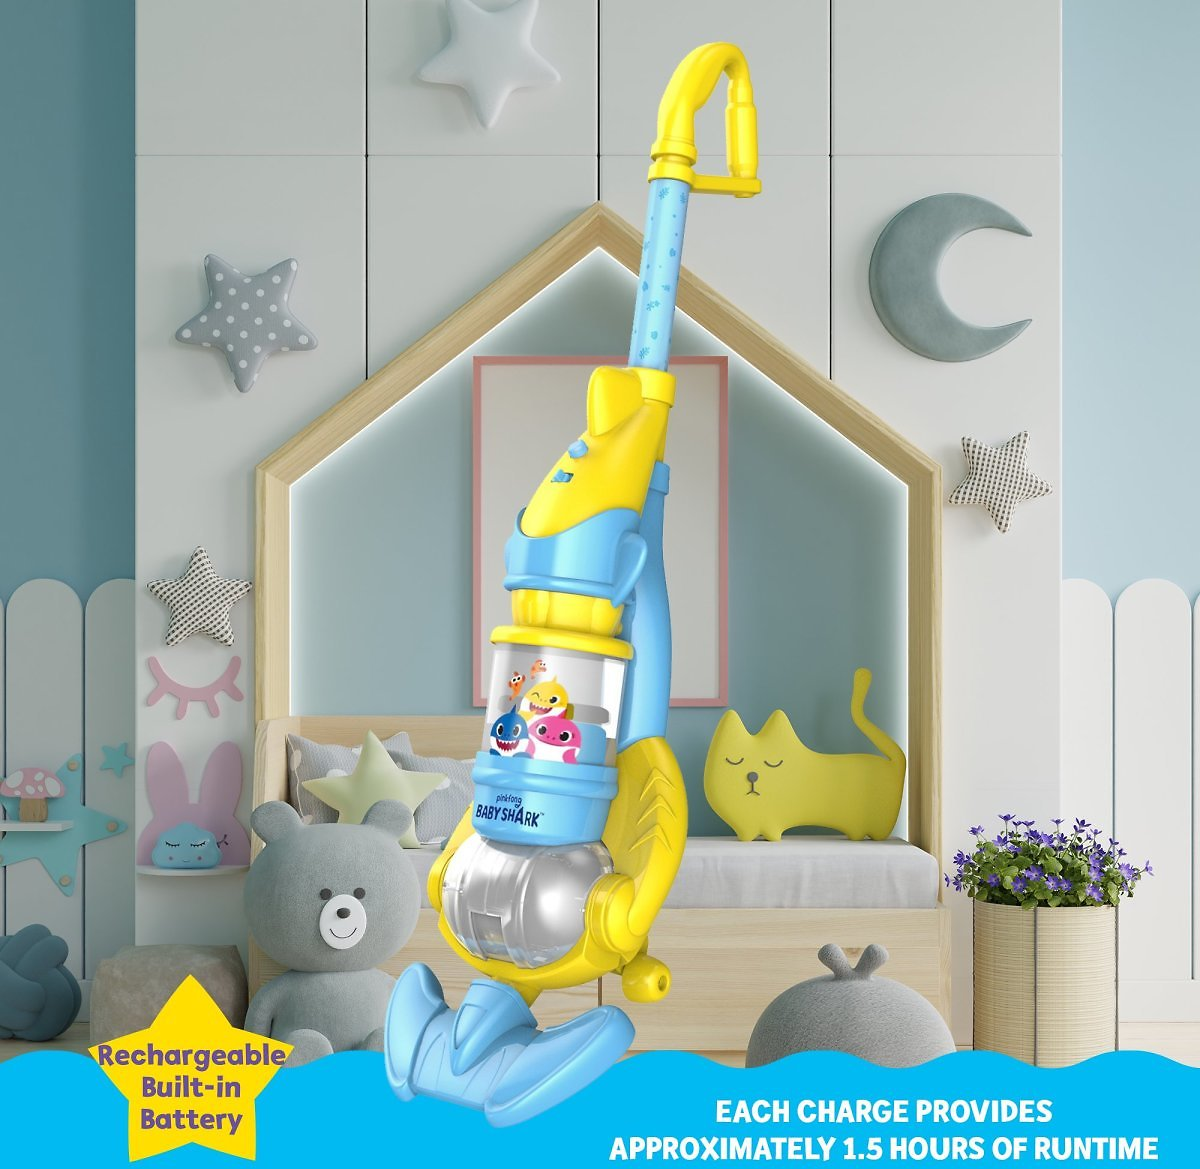 Pinkfong Baby Shark Children's Vacuum with Real Suction Power (VC101B)